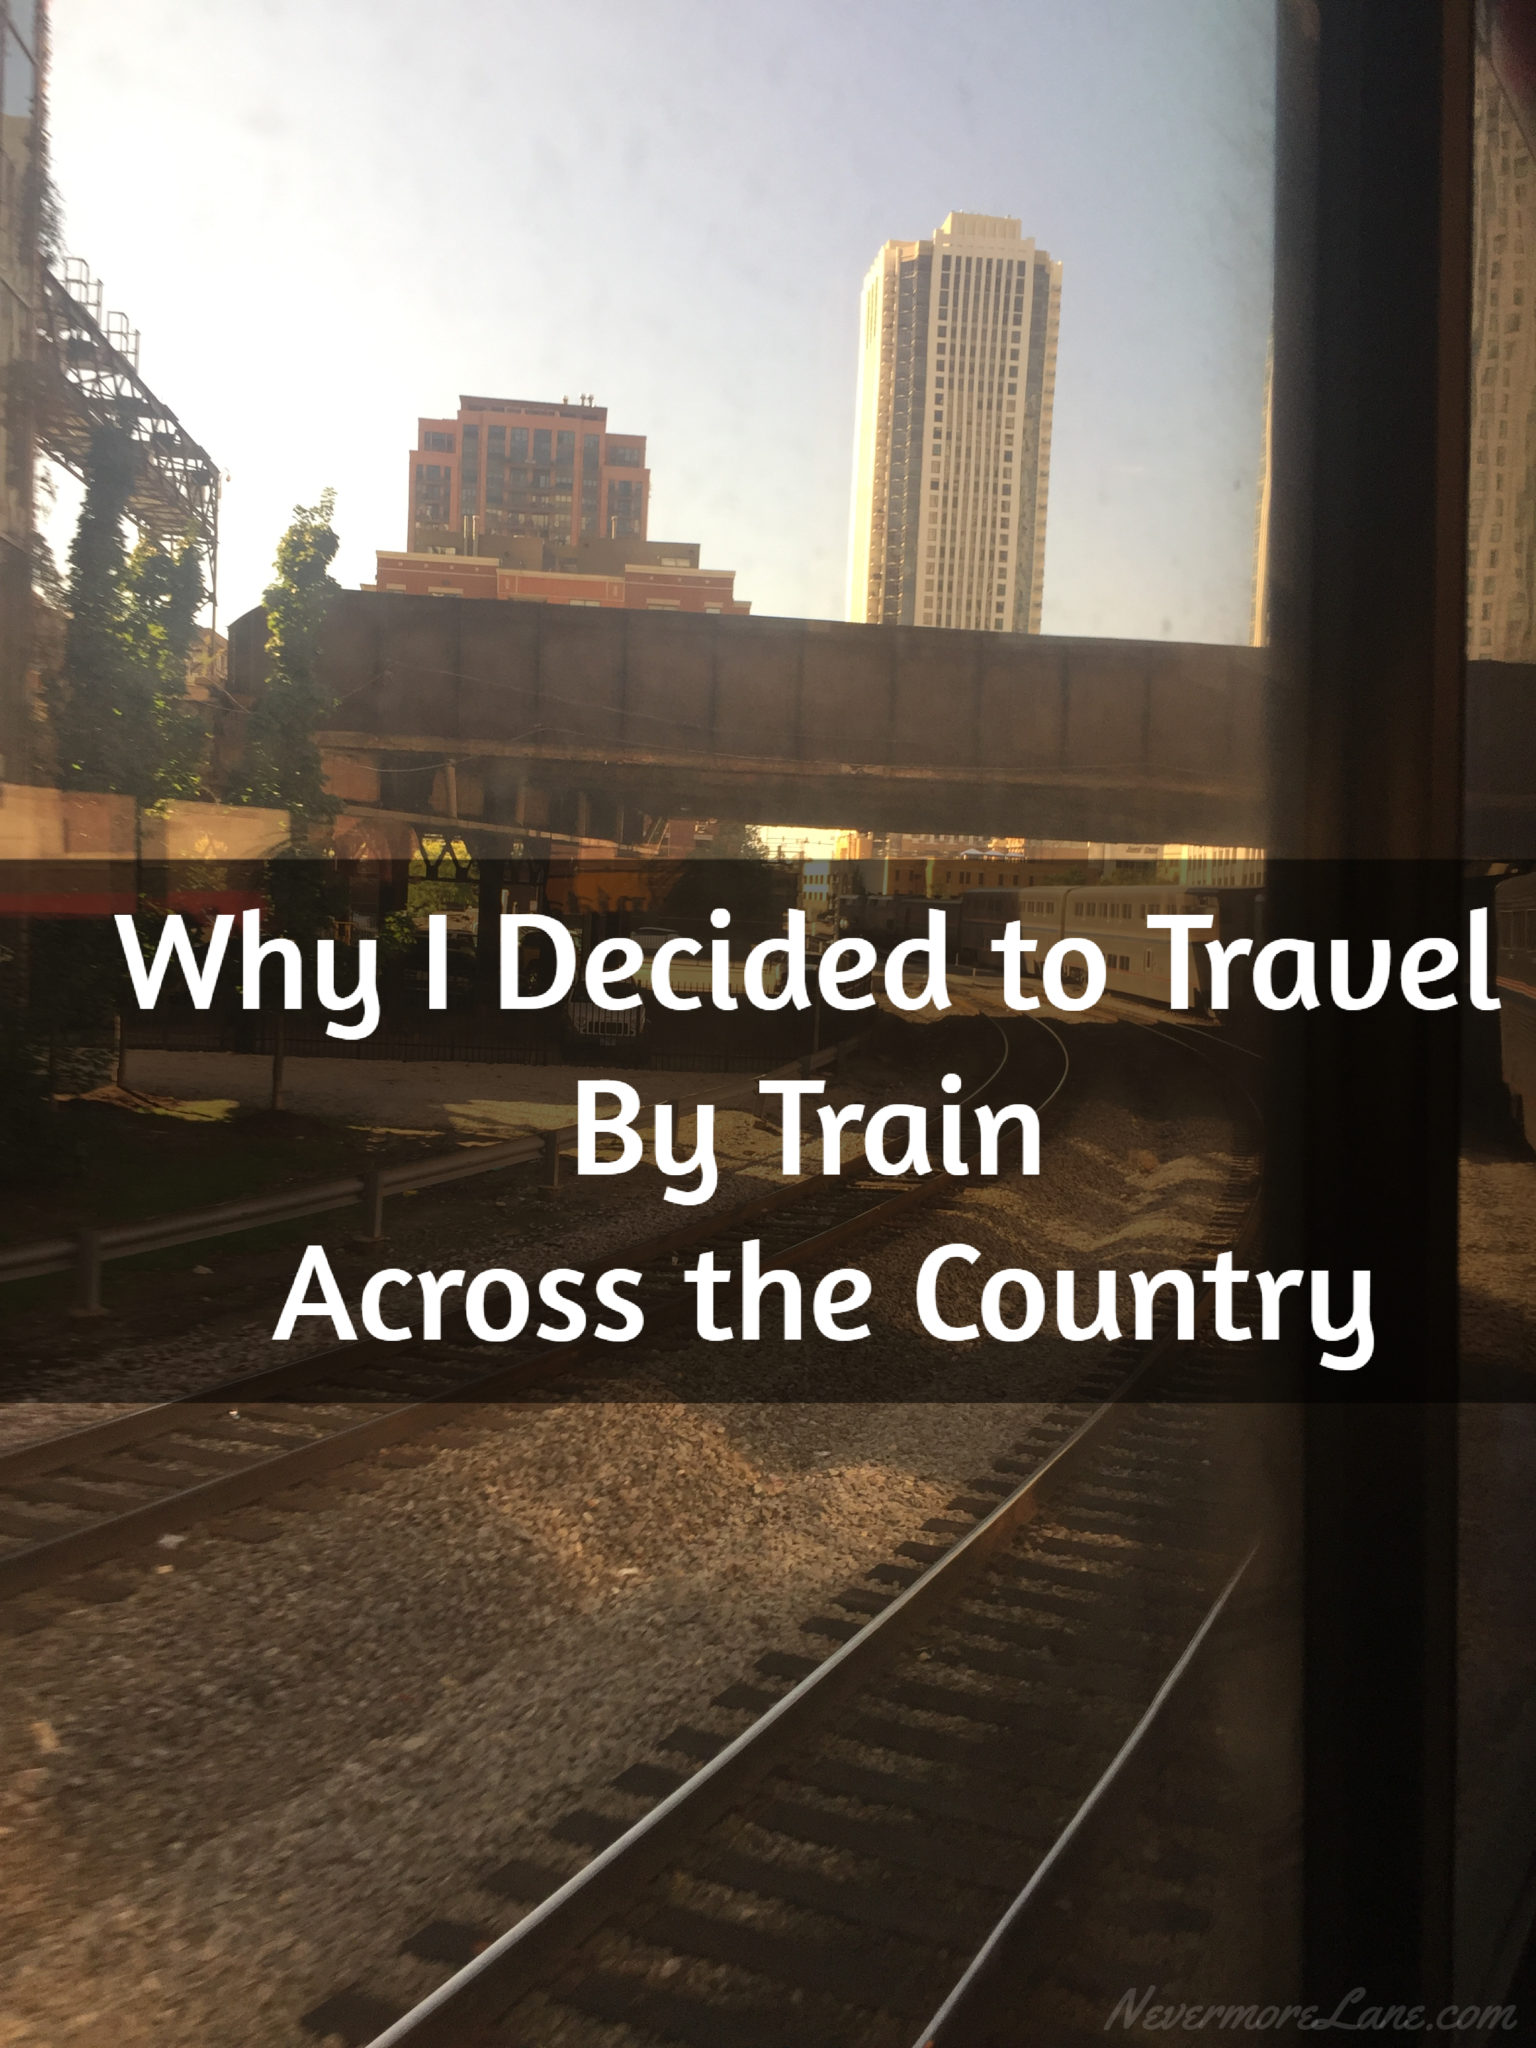 Why I Decided to Travel By Train Across the Country